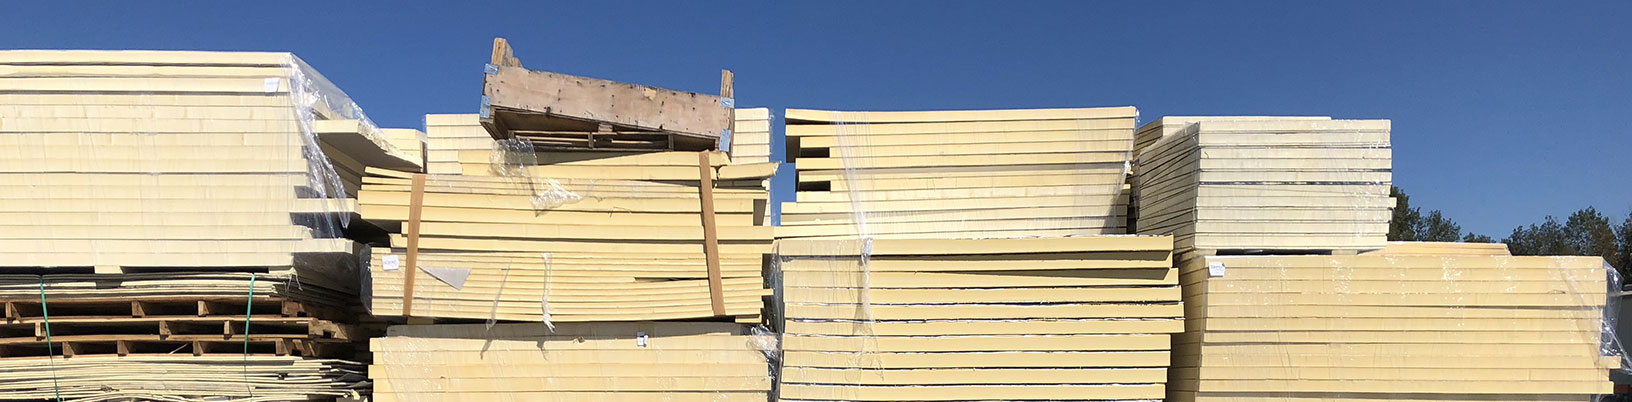 Stacks of used foam insulation boards ready for reuse